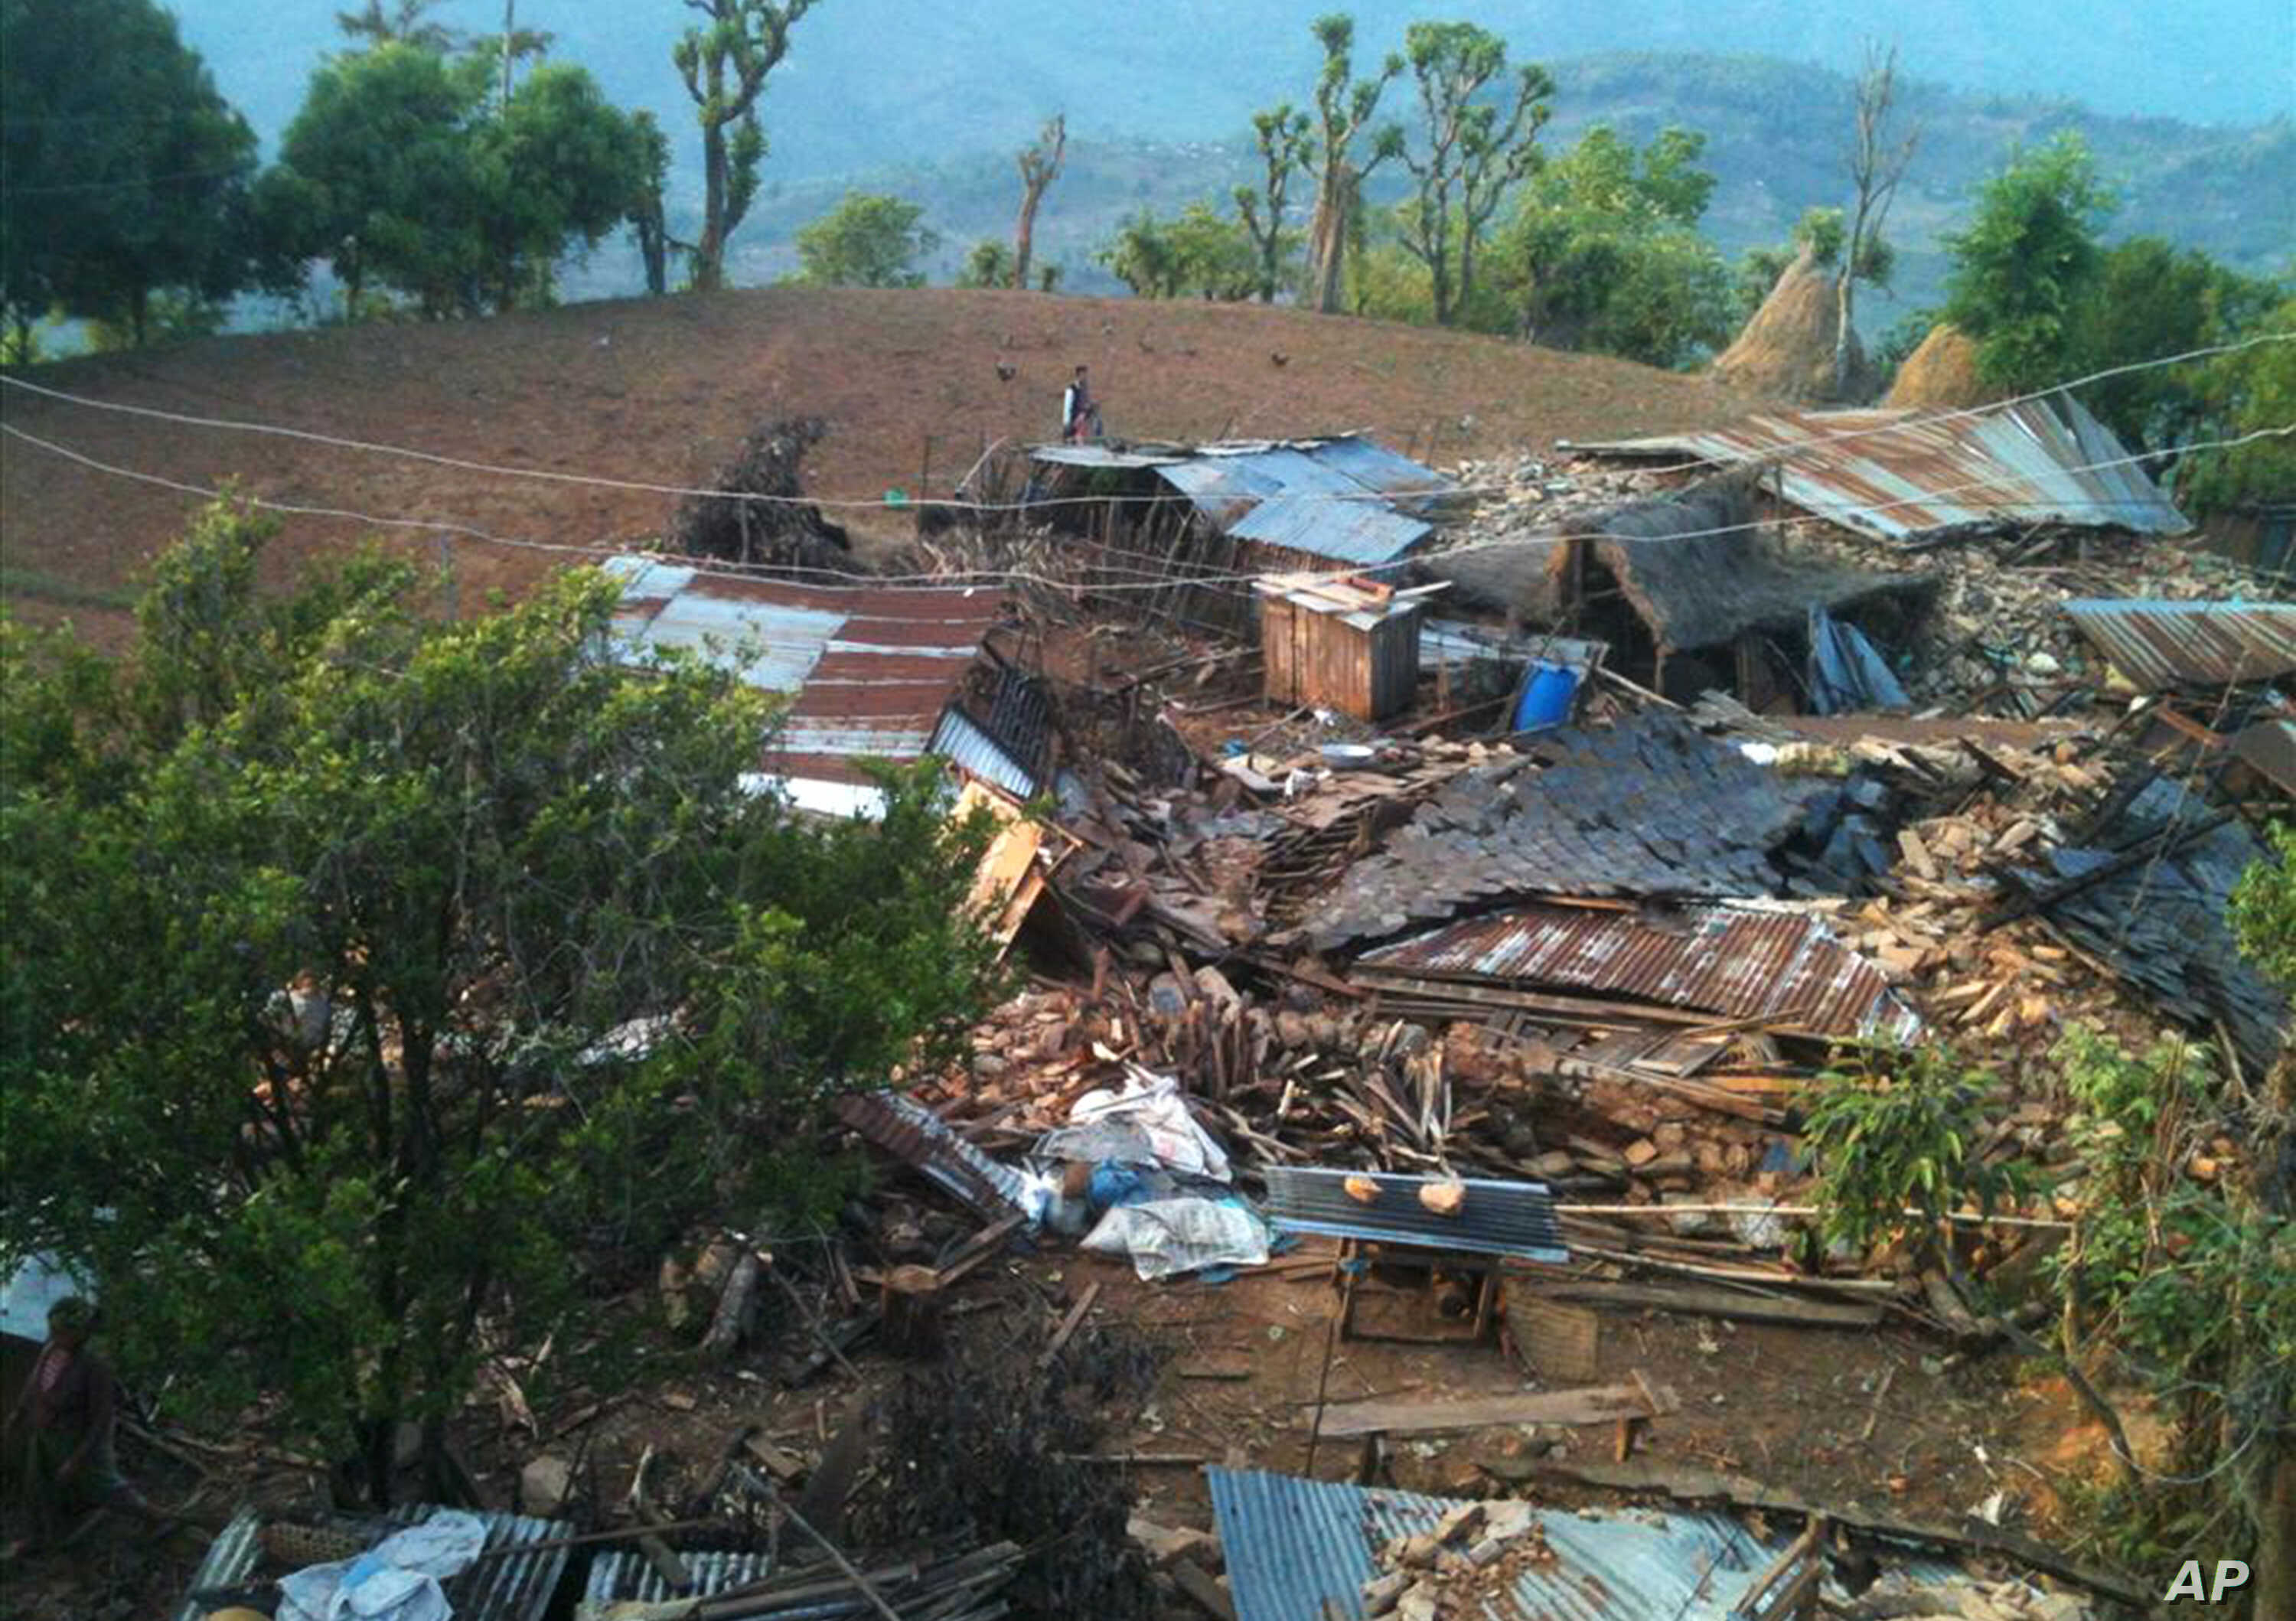 In this photo provided by World Vision, houses lie destroyed by Saturday's earthquake at Paslang village in Gorkha municipality, Nepal, April 27, 2015.